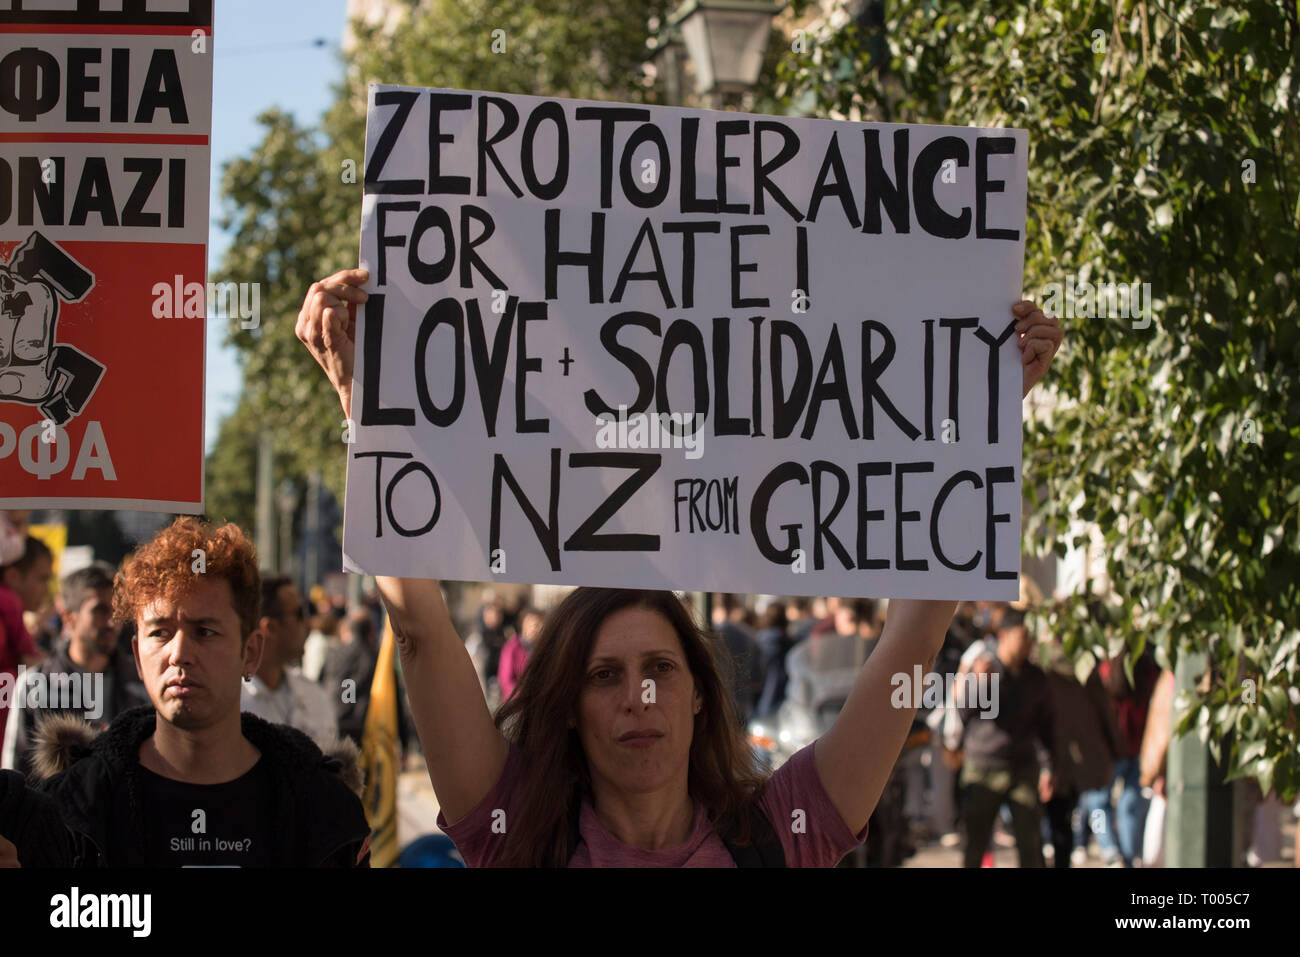 Athens, Greece. 16th March 2019. A protester holds a placard with a message of solidarity to the victims of the racist attack in New Zealand. Leftist and anti-racist organizations staged a rally on the occasion of the International Day against racism to demonstrate against discrimination and racist policies and behaviours. © Nikolas Georgiou / Alamy Live News - Stock Image